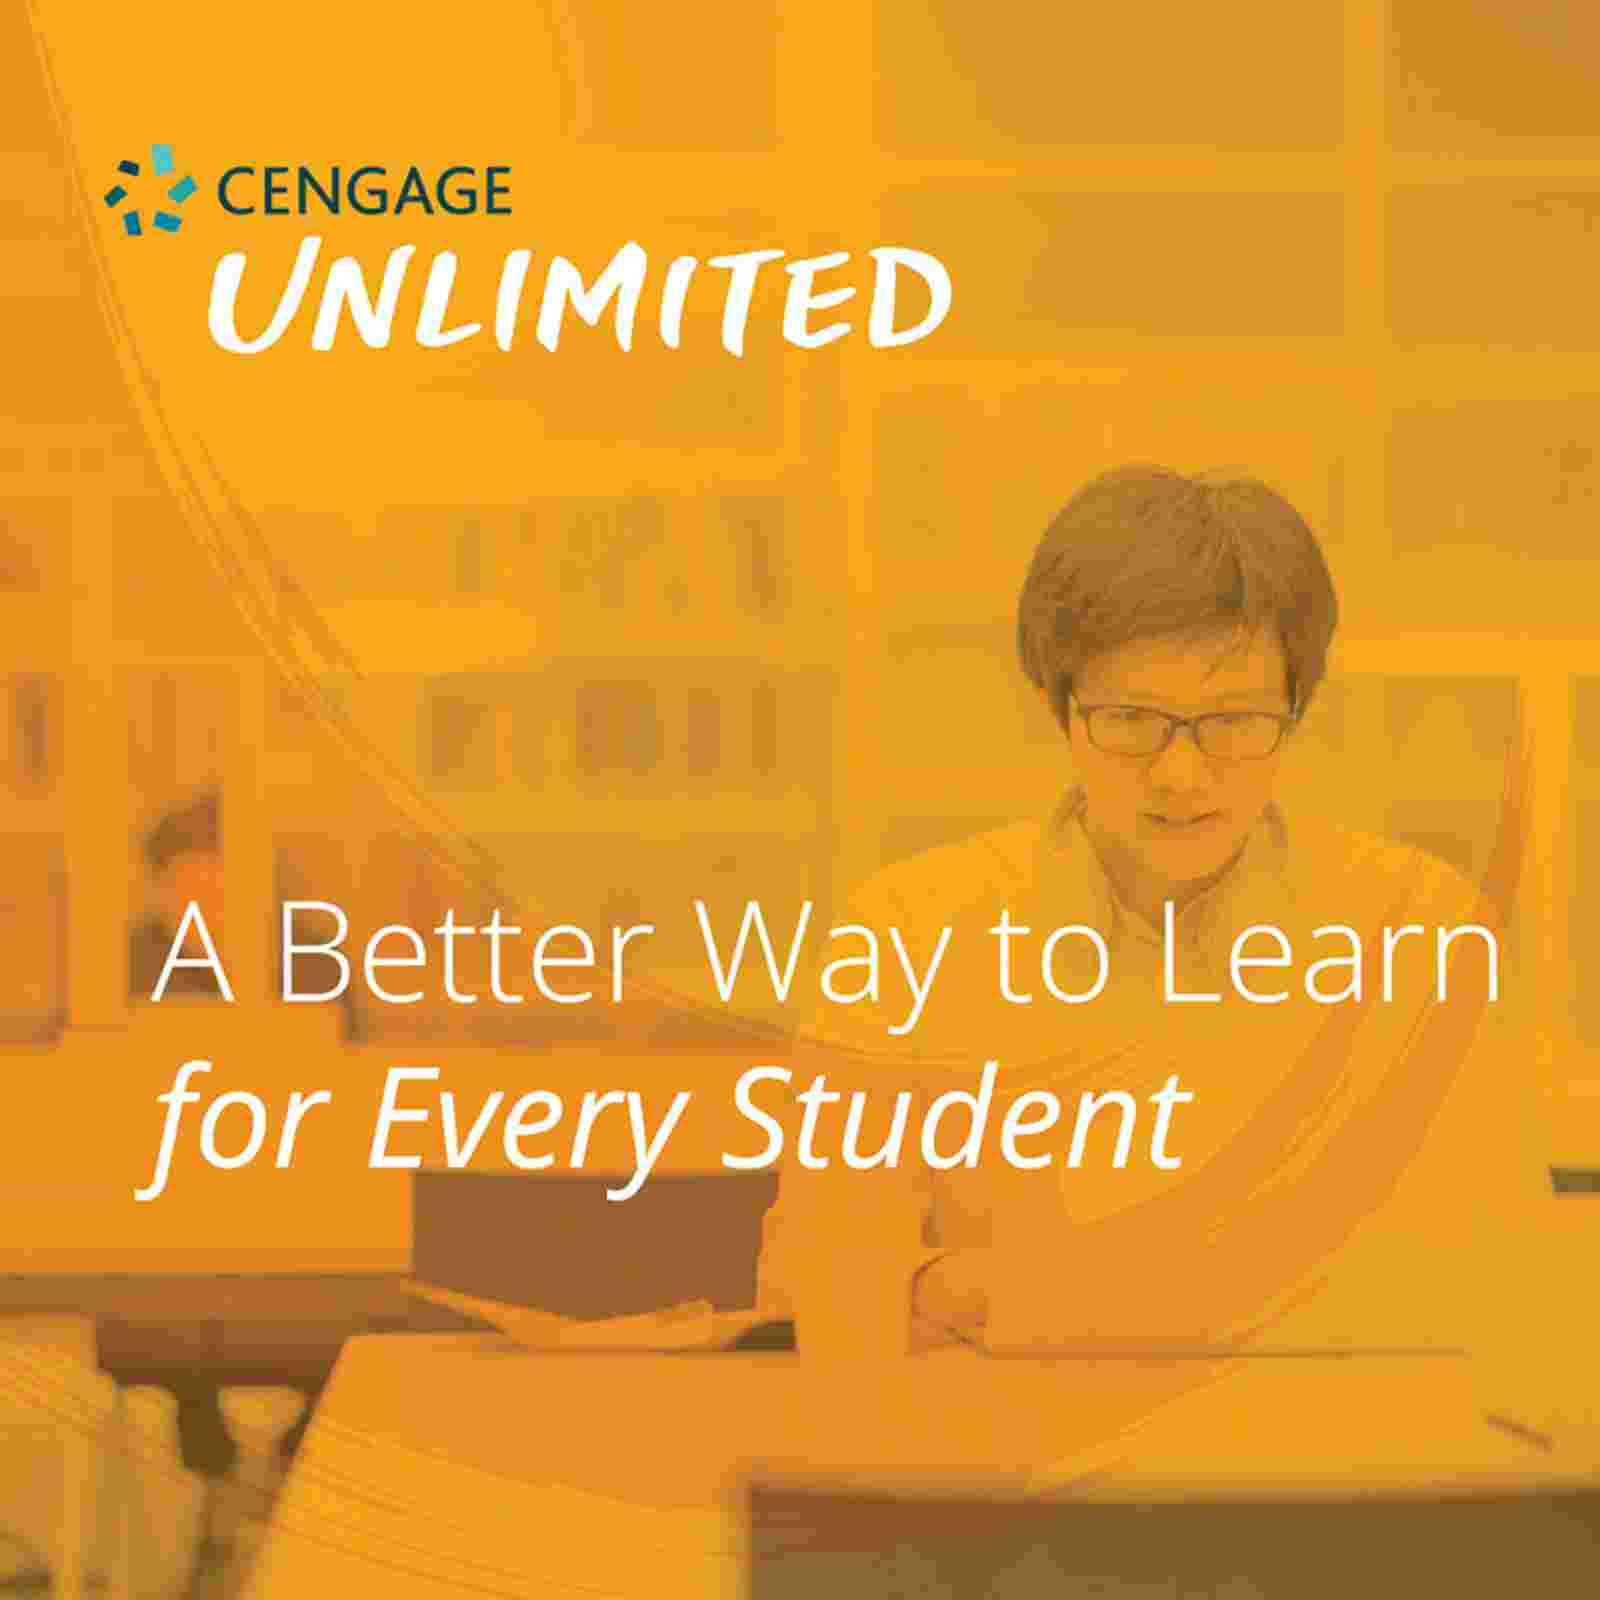 Cengage Unlimited a better way to learn for every student